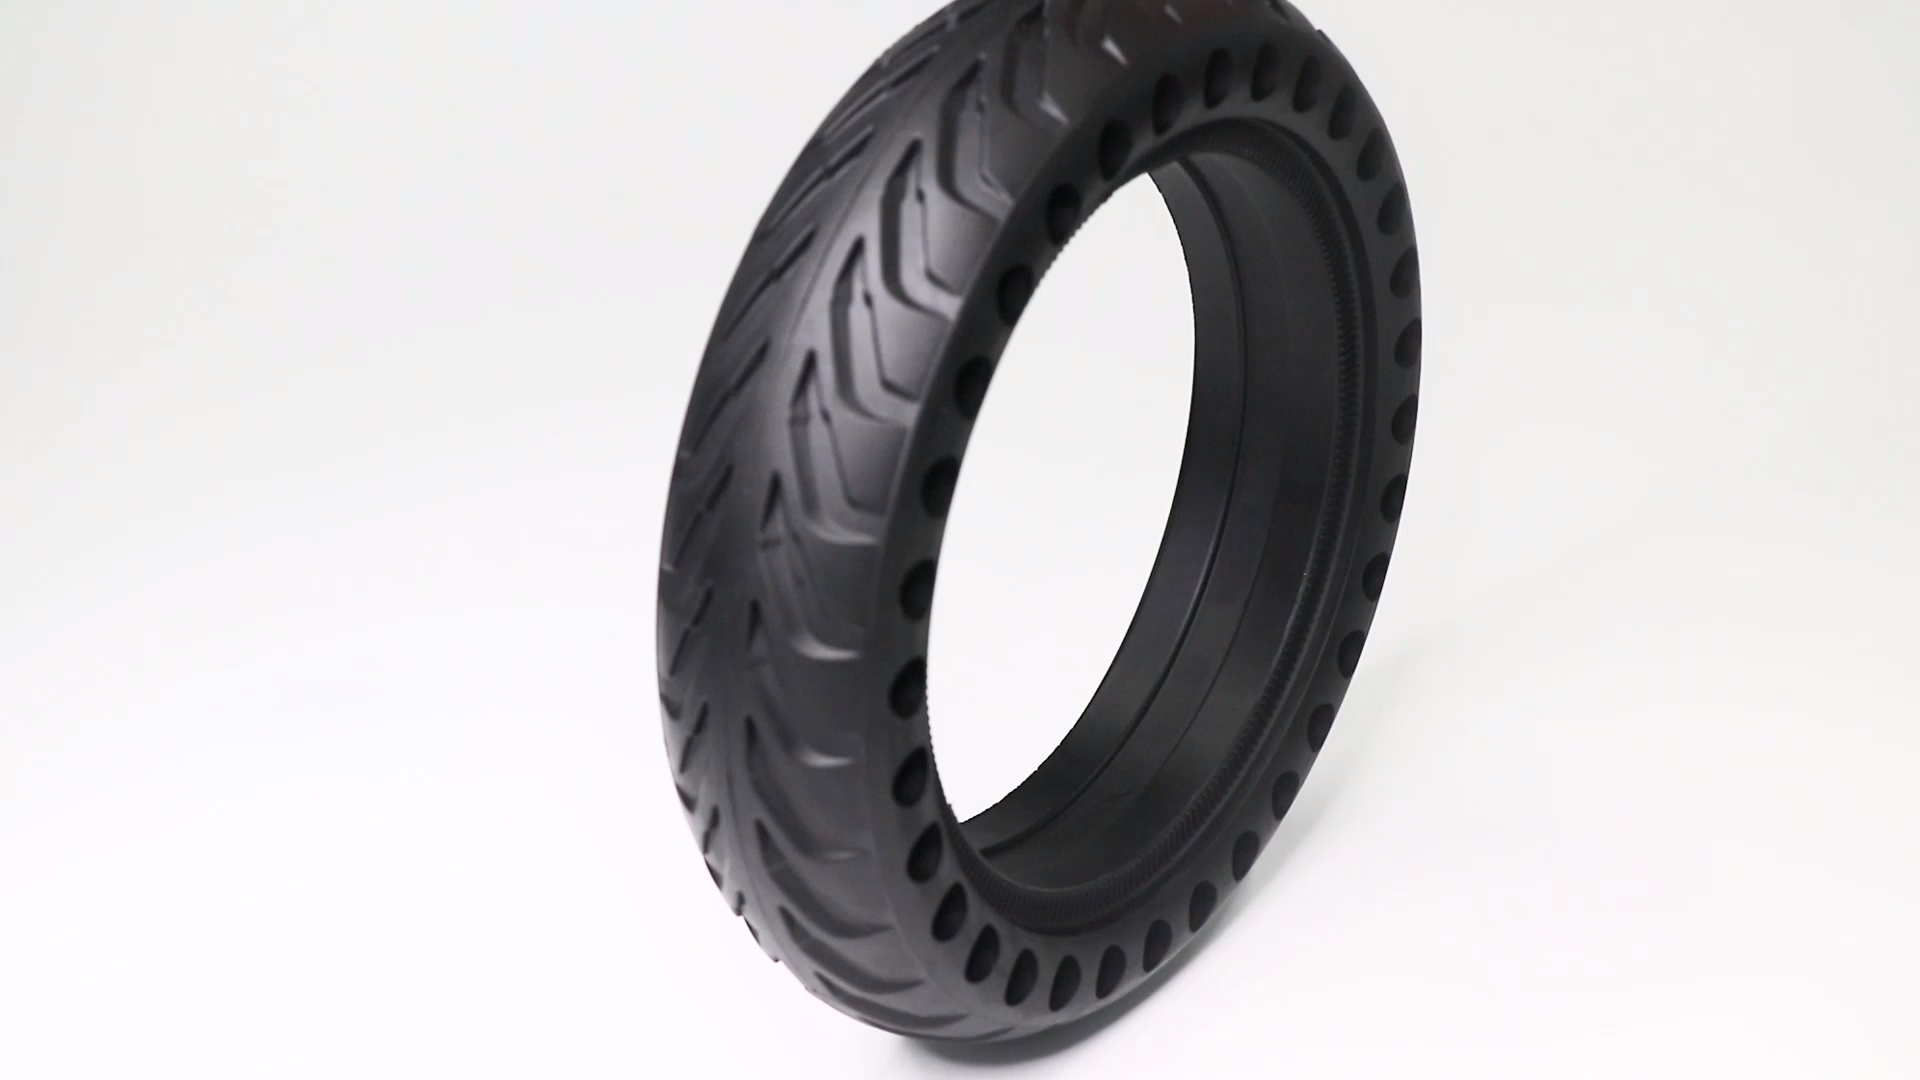 8.5 inch Rubber Solid Tires Airless tires for Xiaomi M365 Electric Scooter